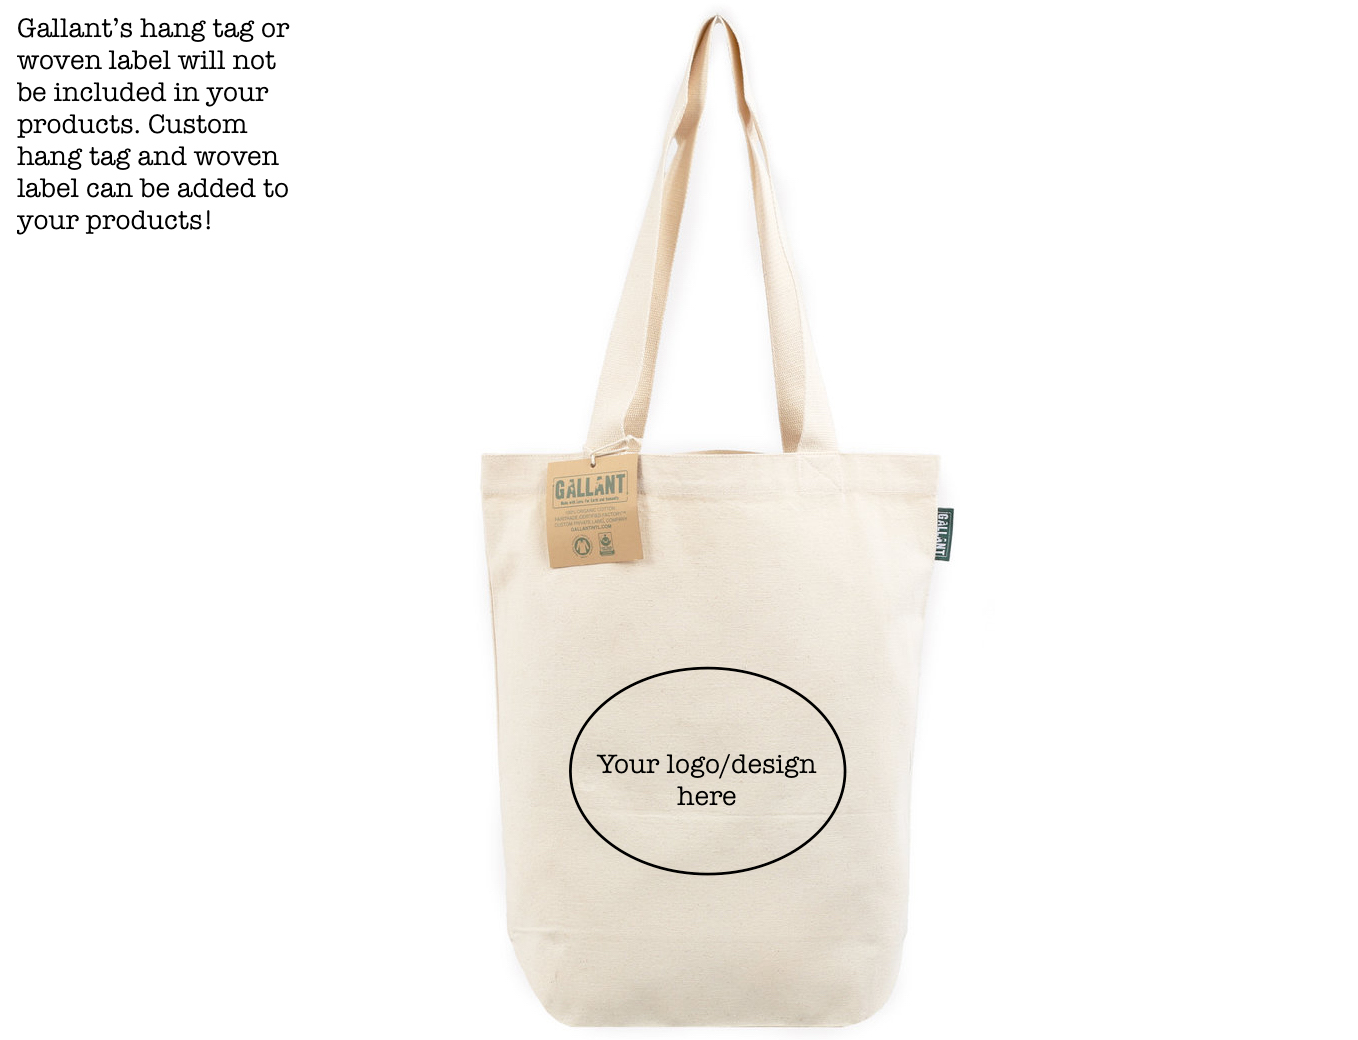 Tote Bags are a great to advertise your brand especially when they are made of organic cotton at a Fair Trade certified factory.